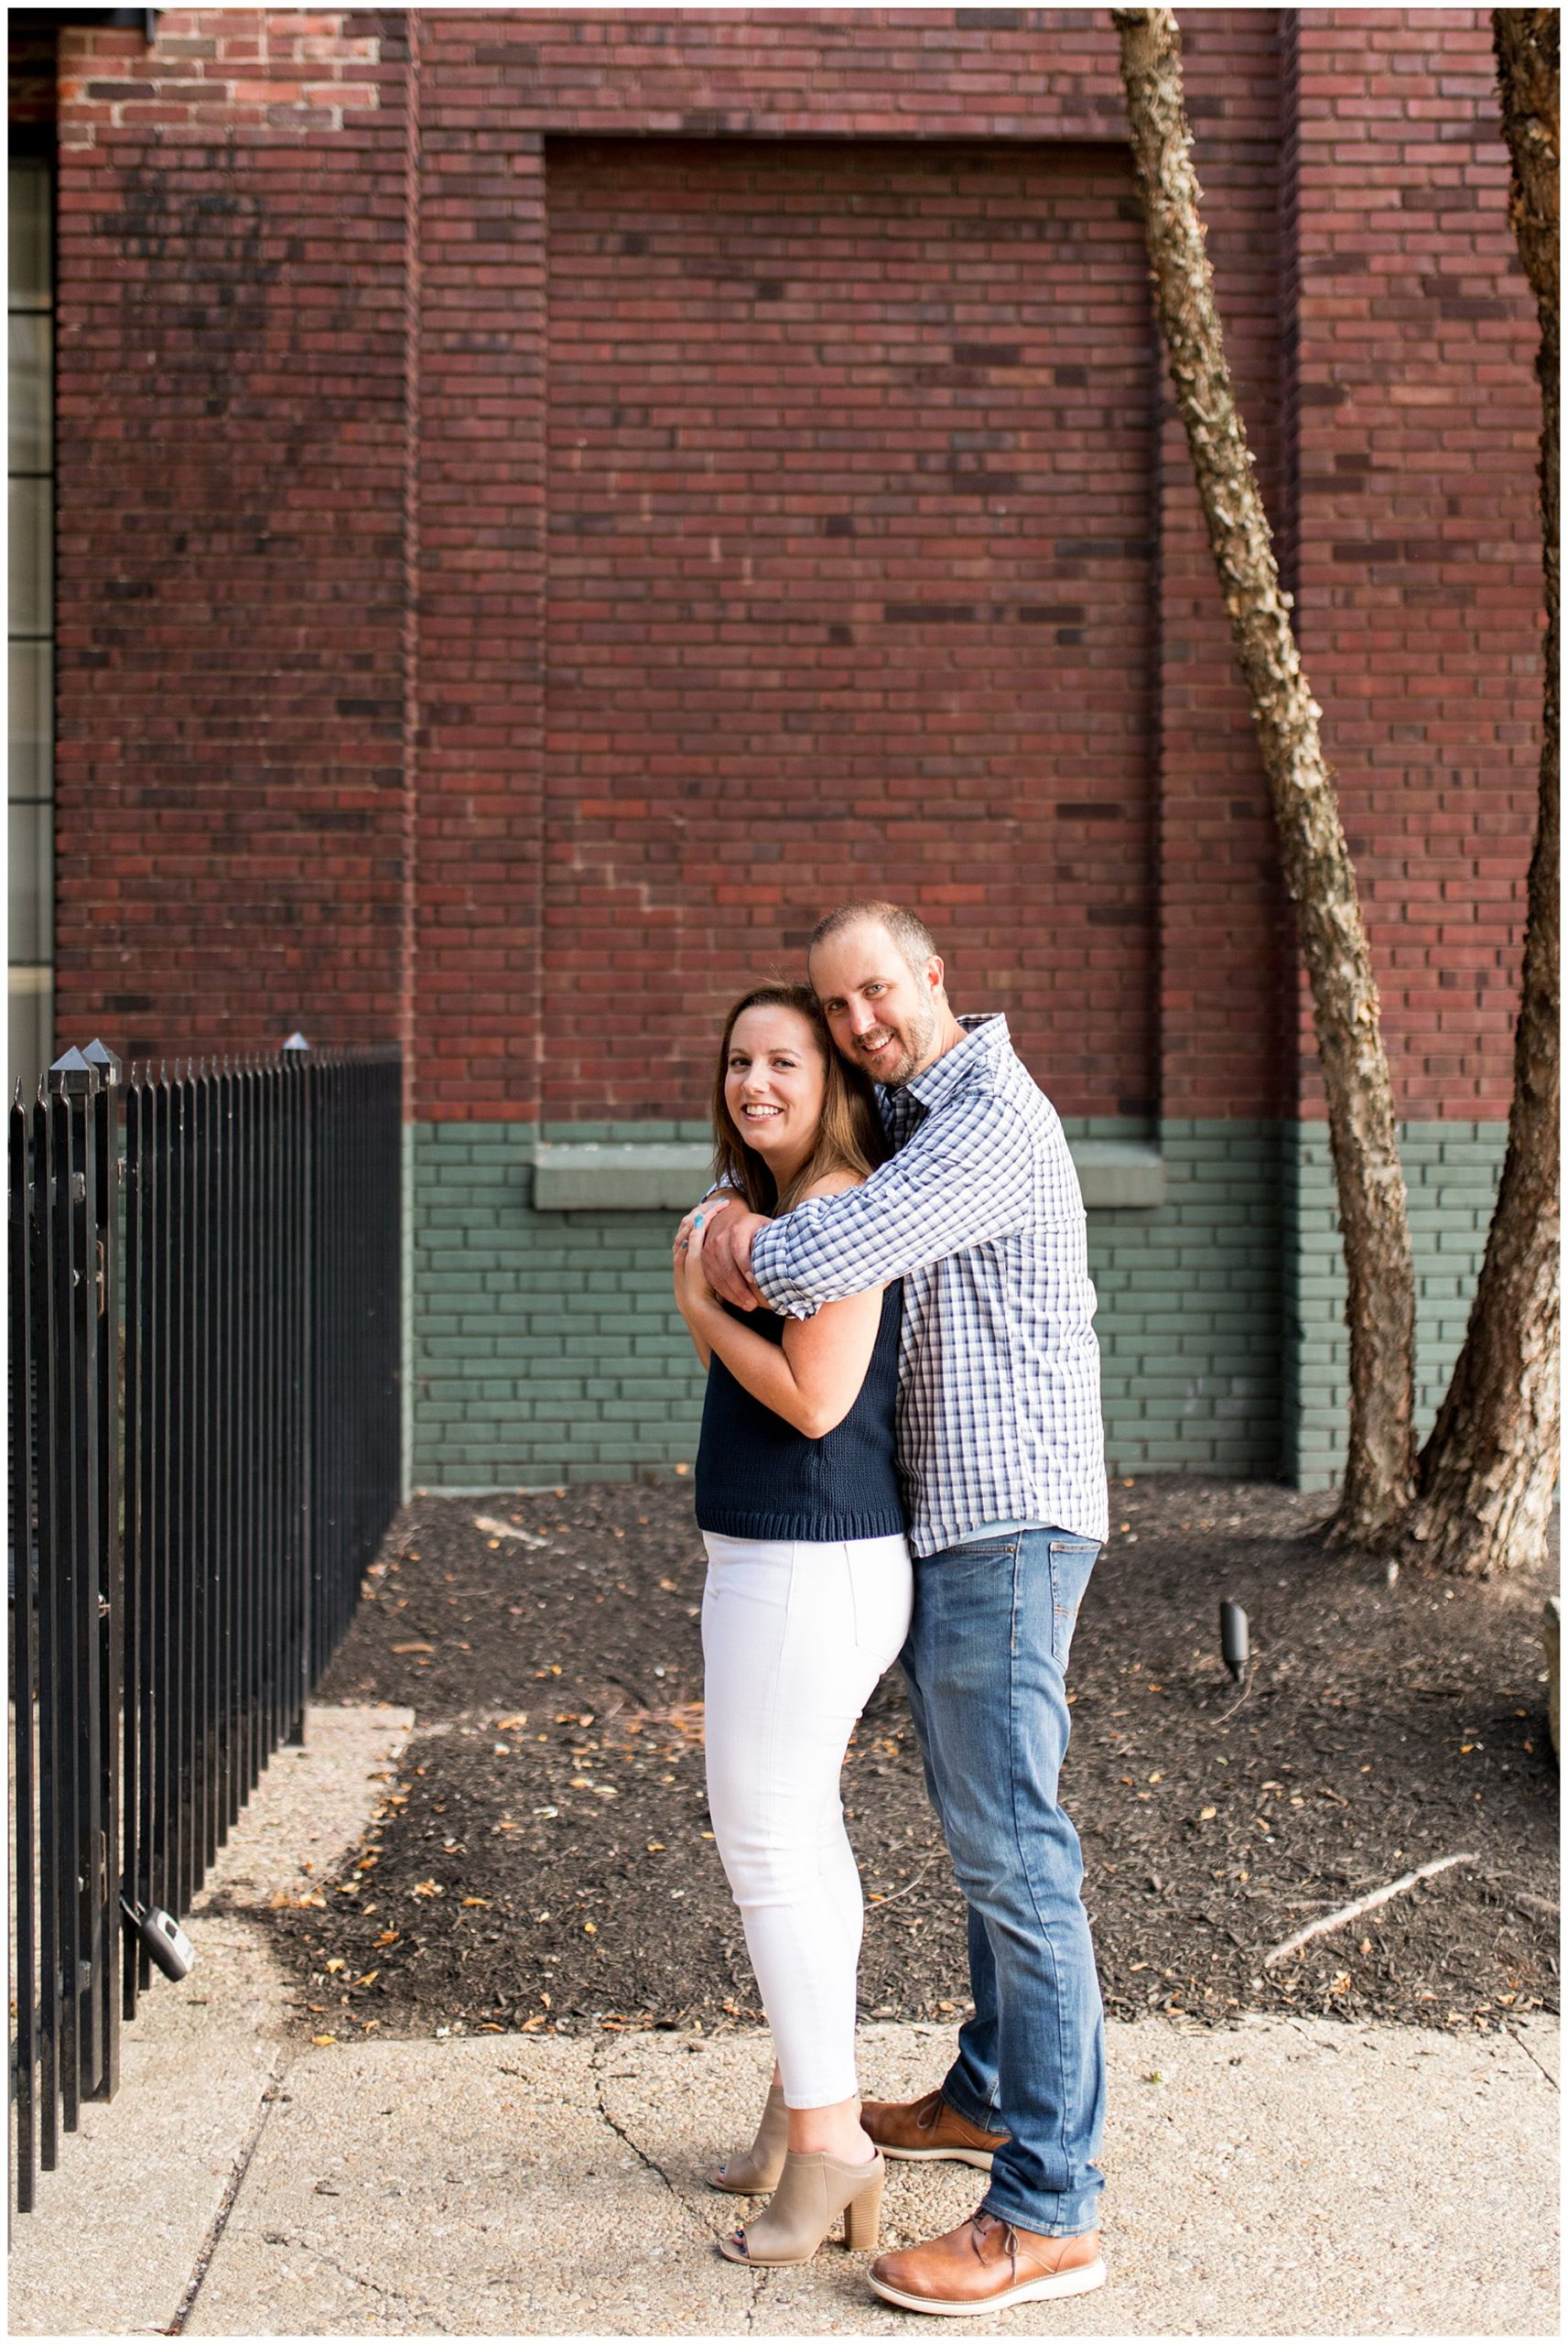 Mass Ave engagement session in Indianapolis